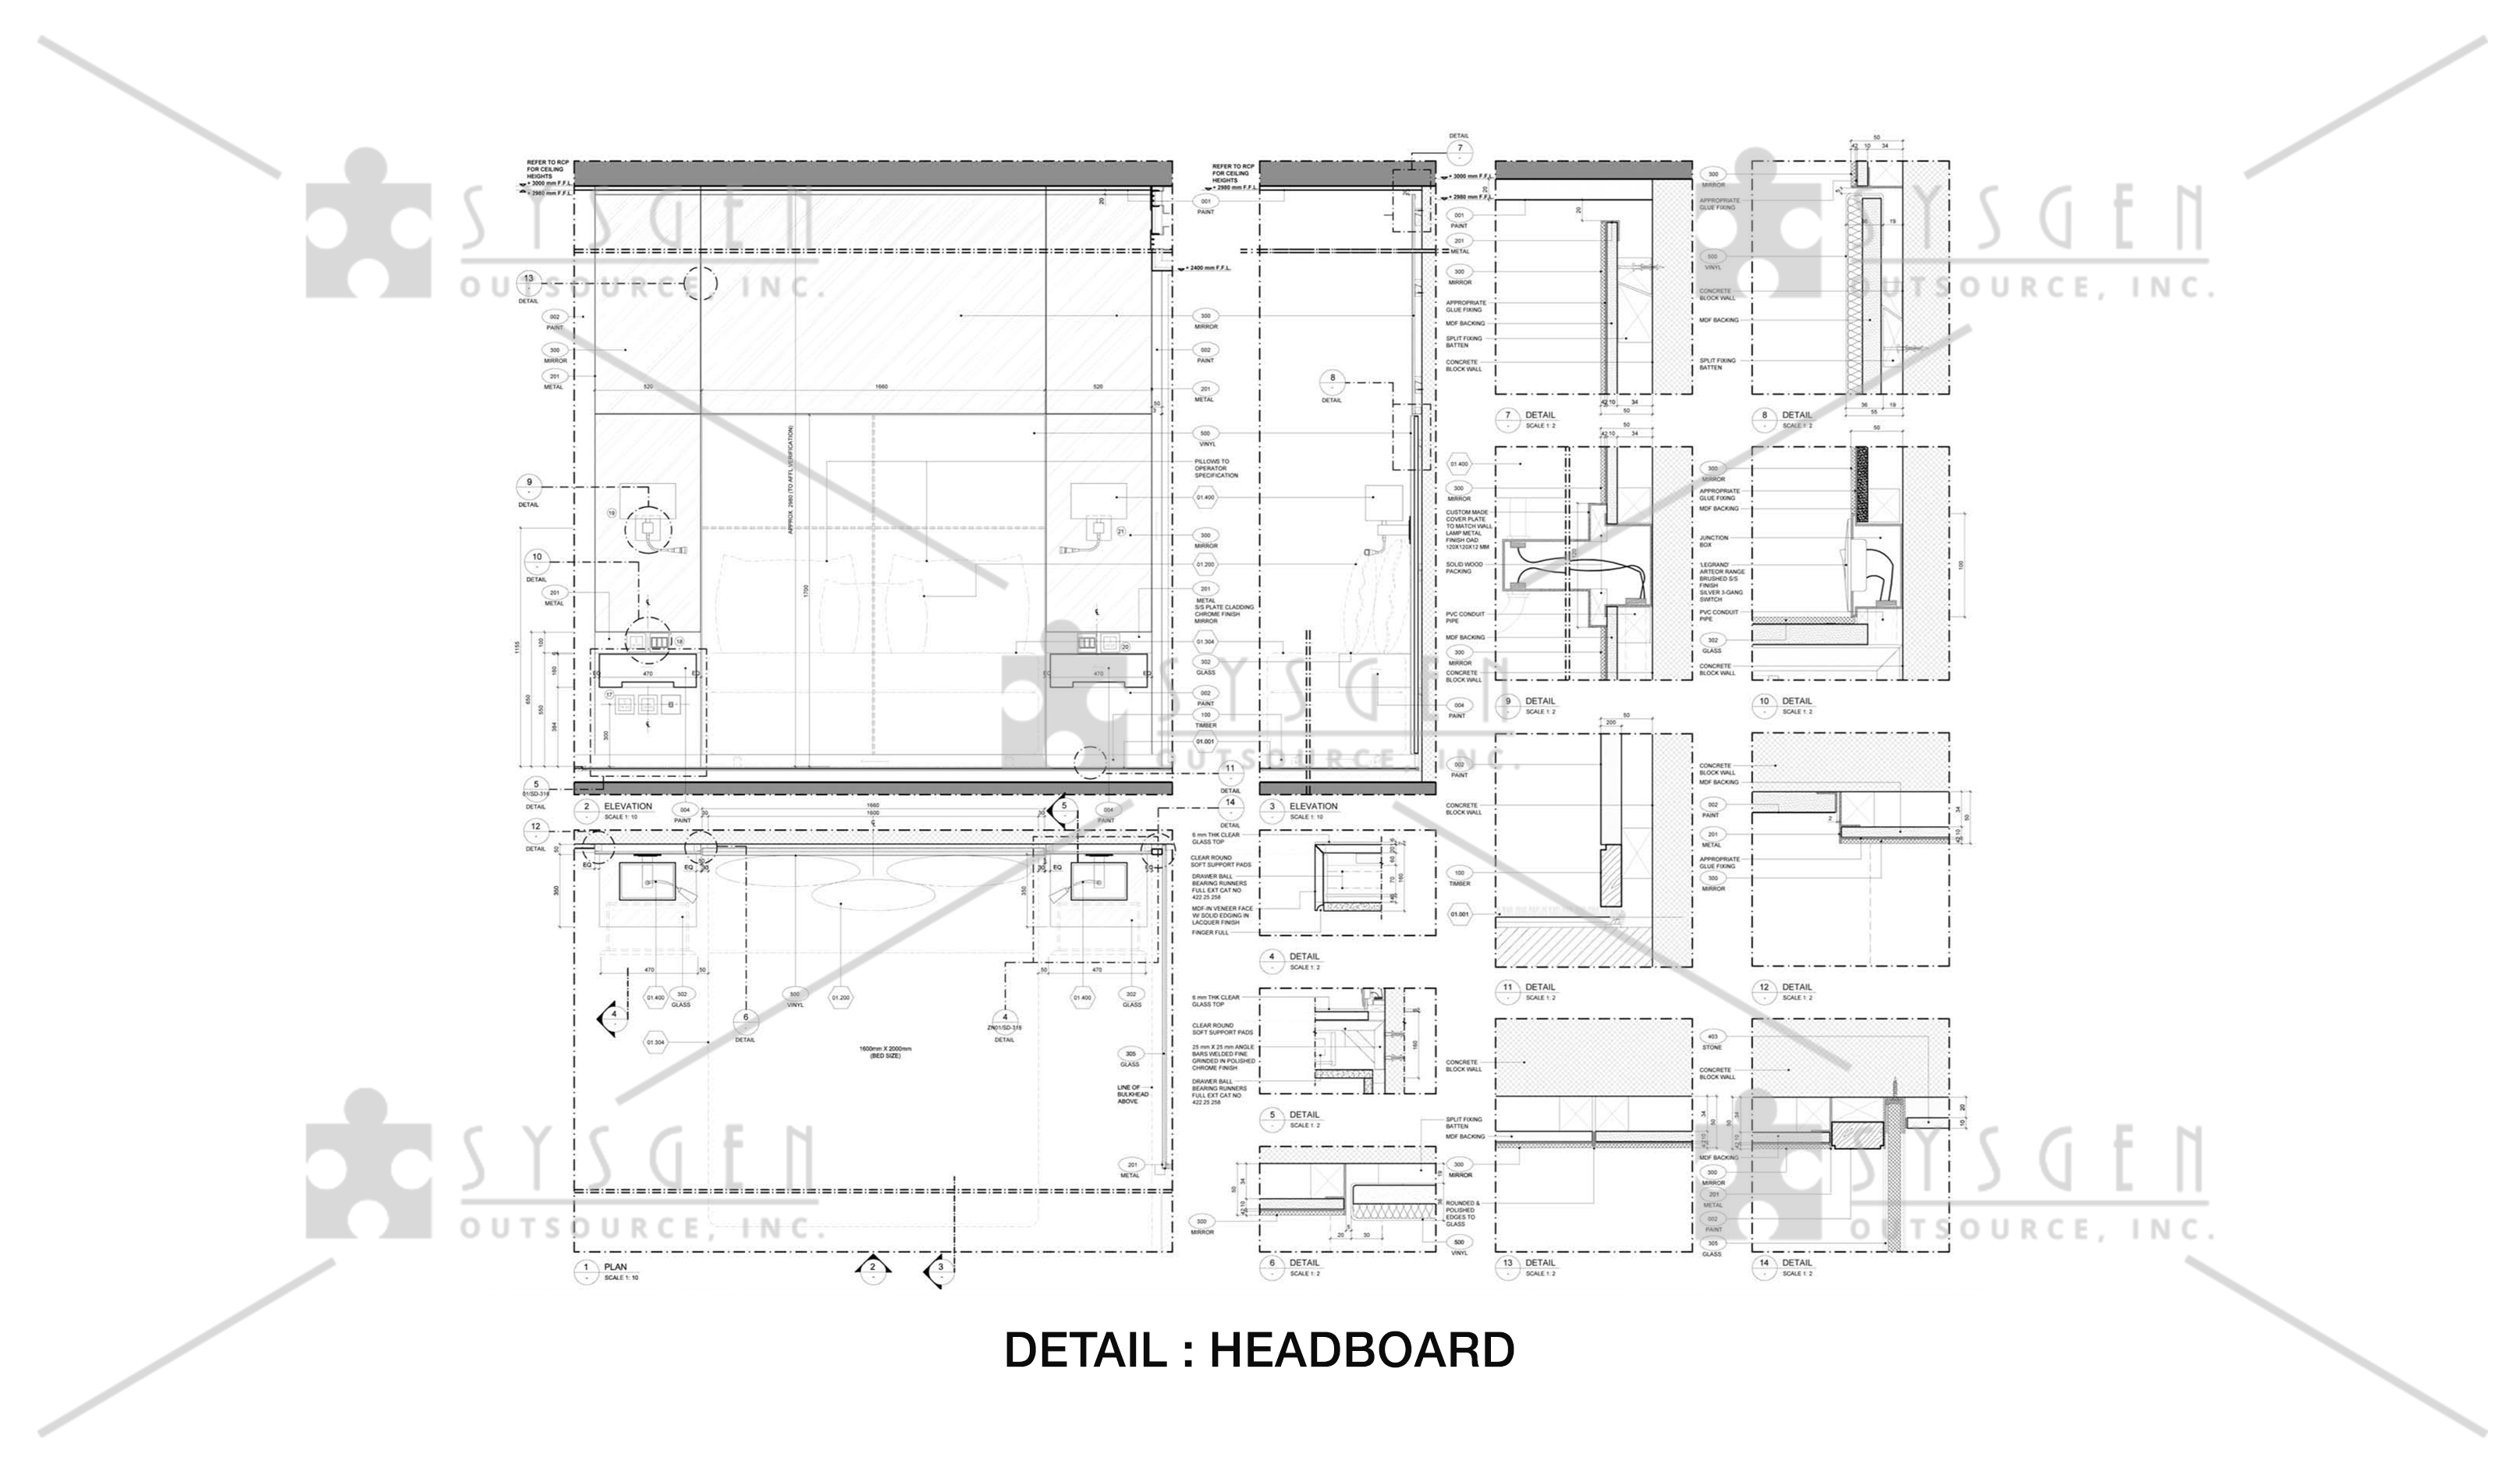 sysgen-outsource-cad-outsourcing-services-interior-design-hotel3